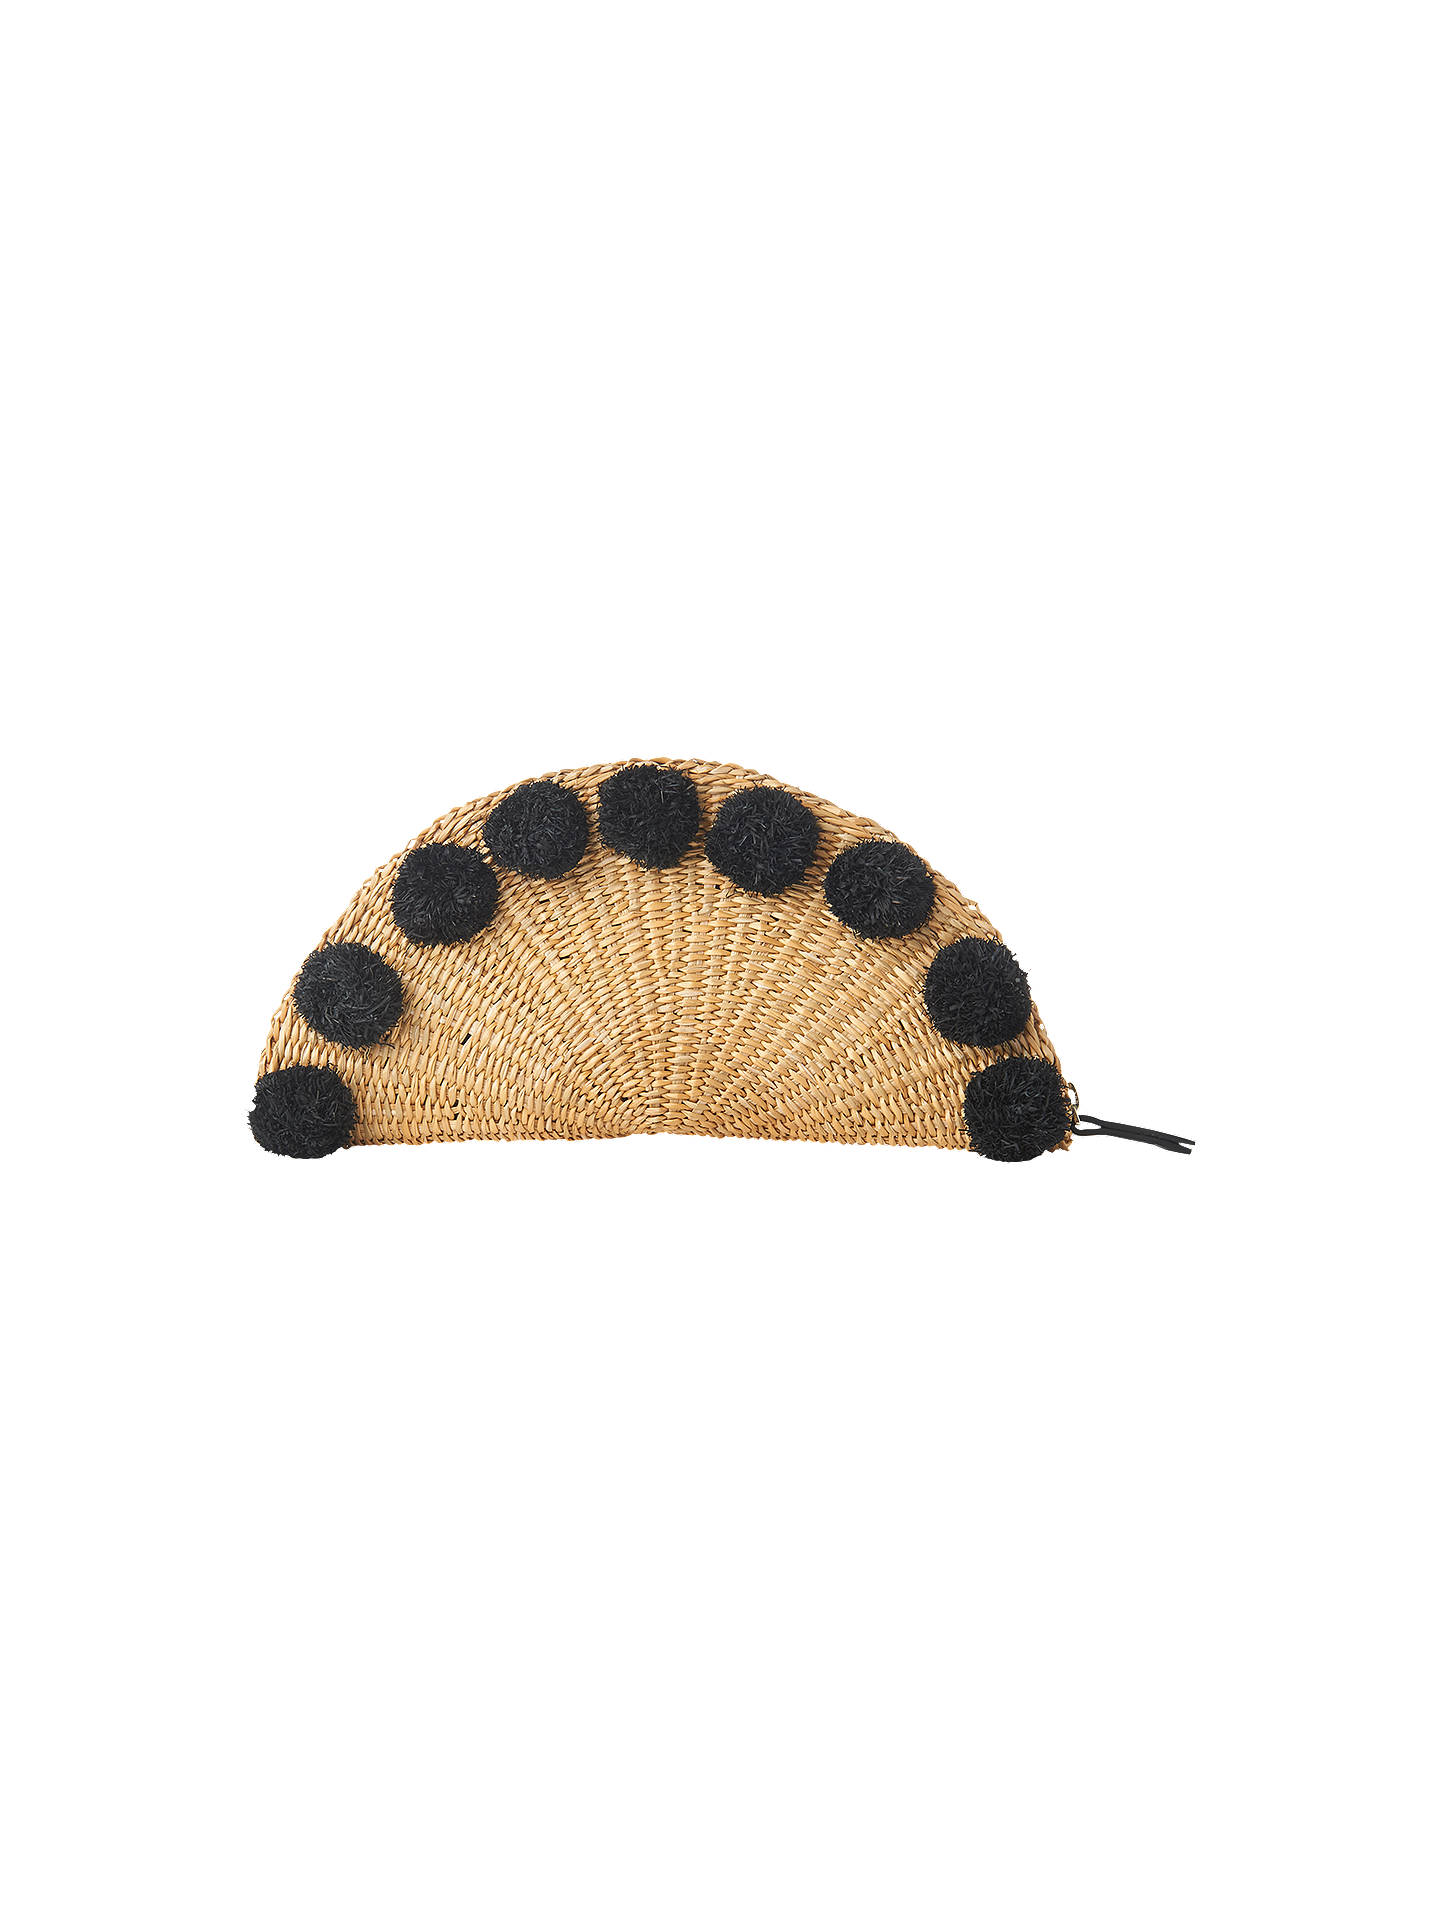 BuyWhistles Taco Pom Pom Clutch Bag, Neutral Online at johnlewis.com